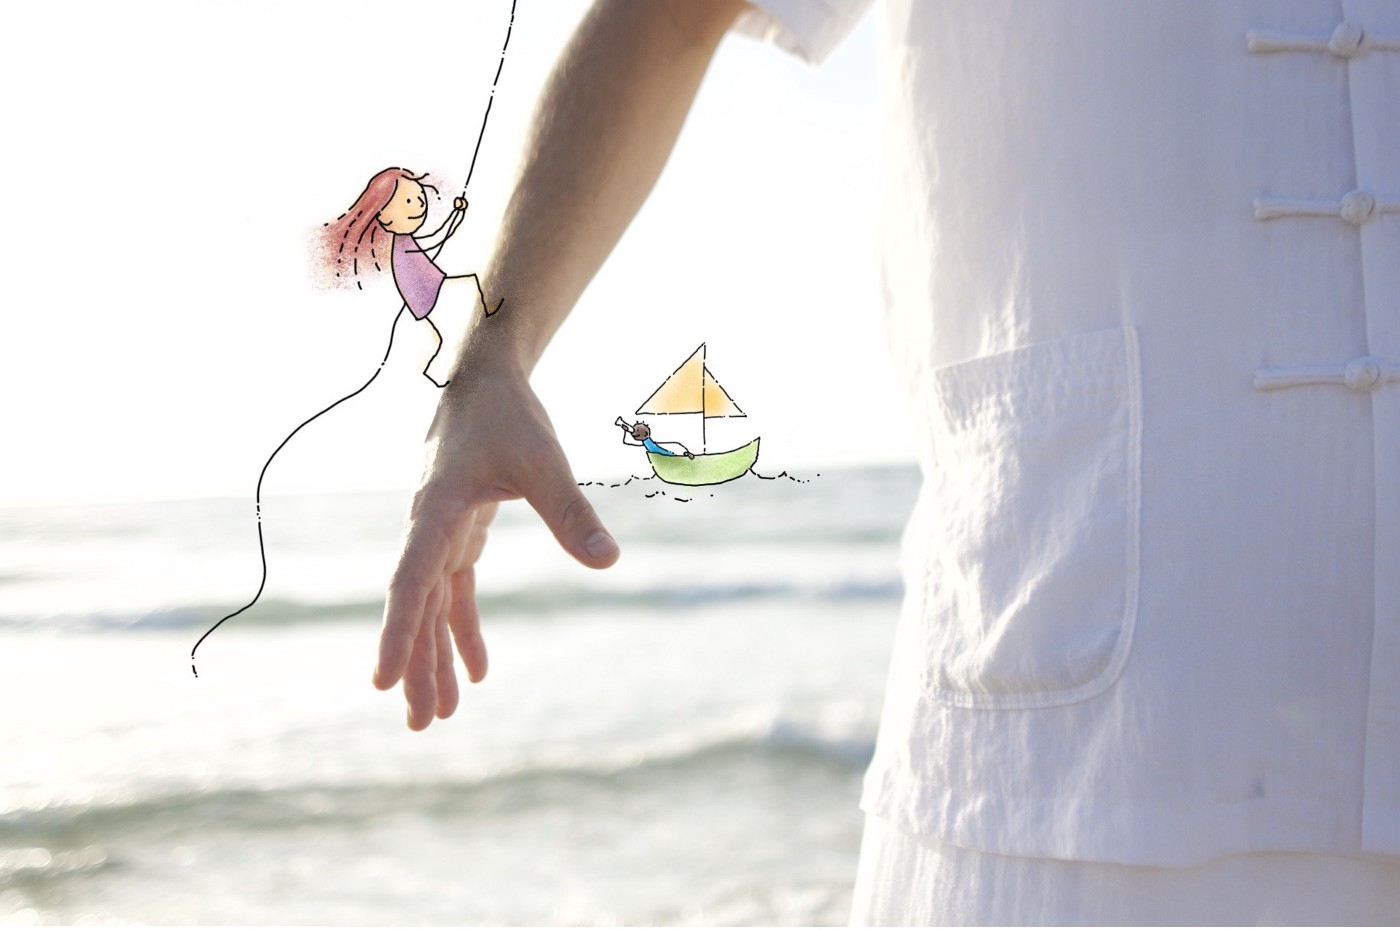 Cropped photo of someone doing Tai Chi at the beach, with a cartoon person climbing up their arm and a cartoon person in a boat in the background.